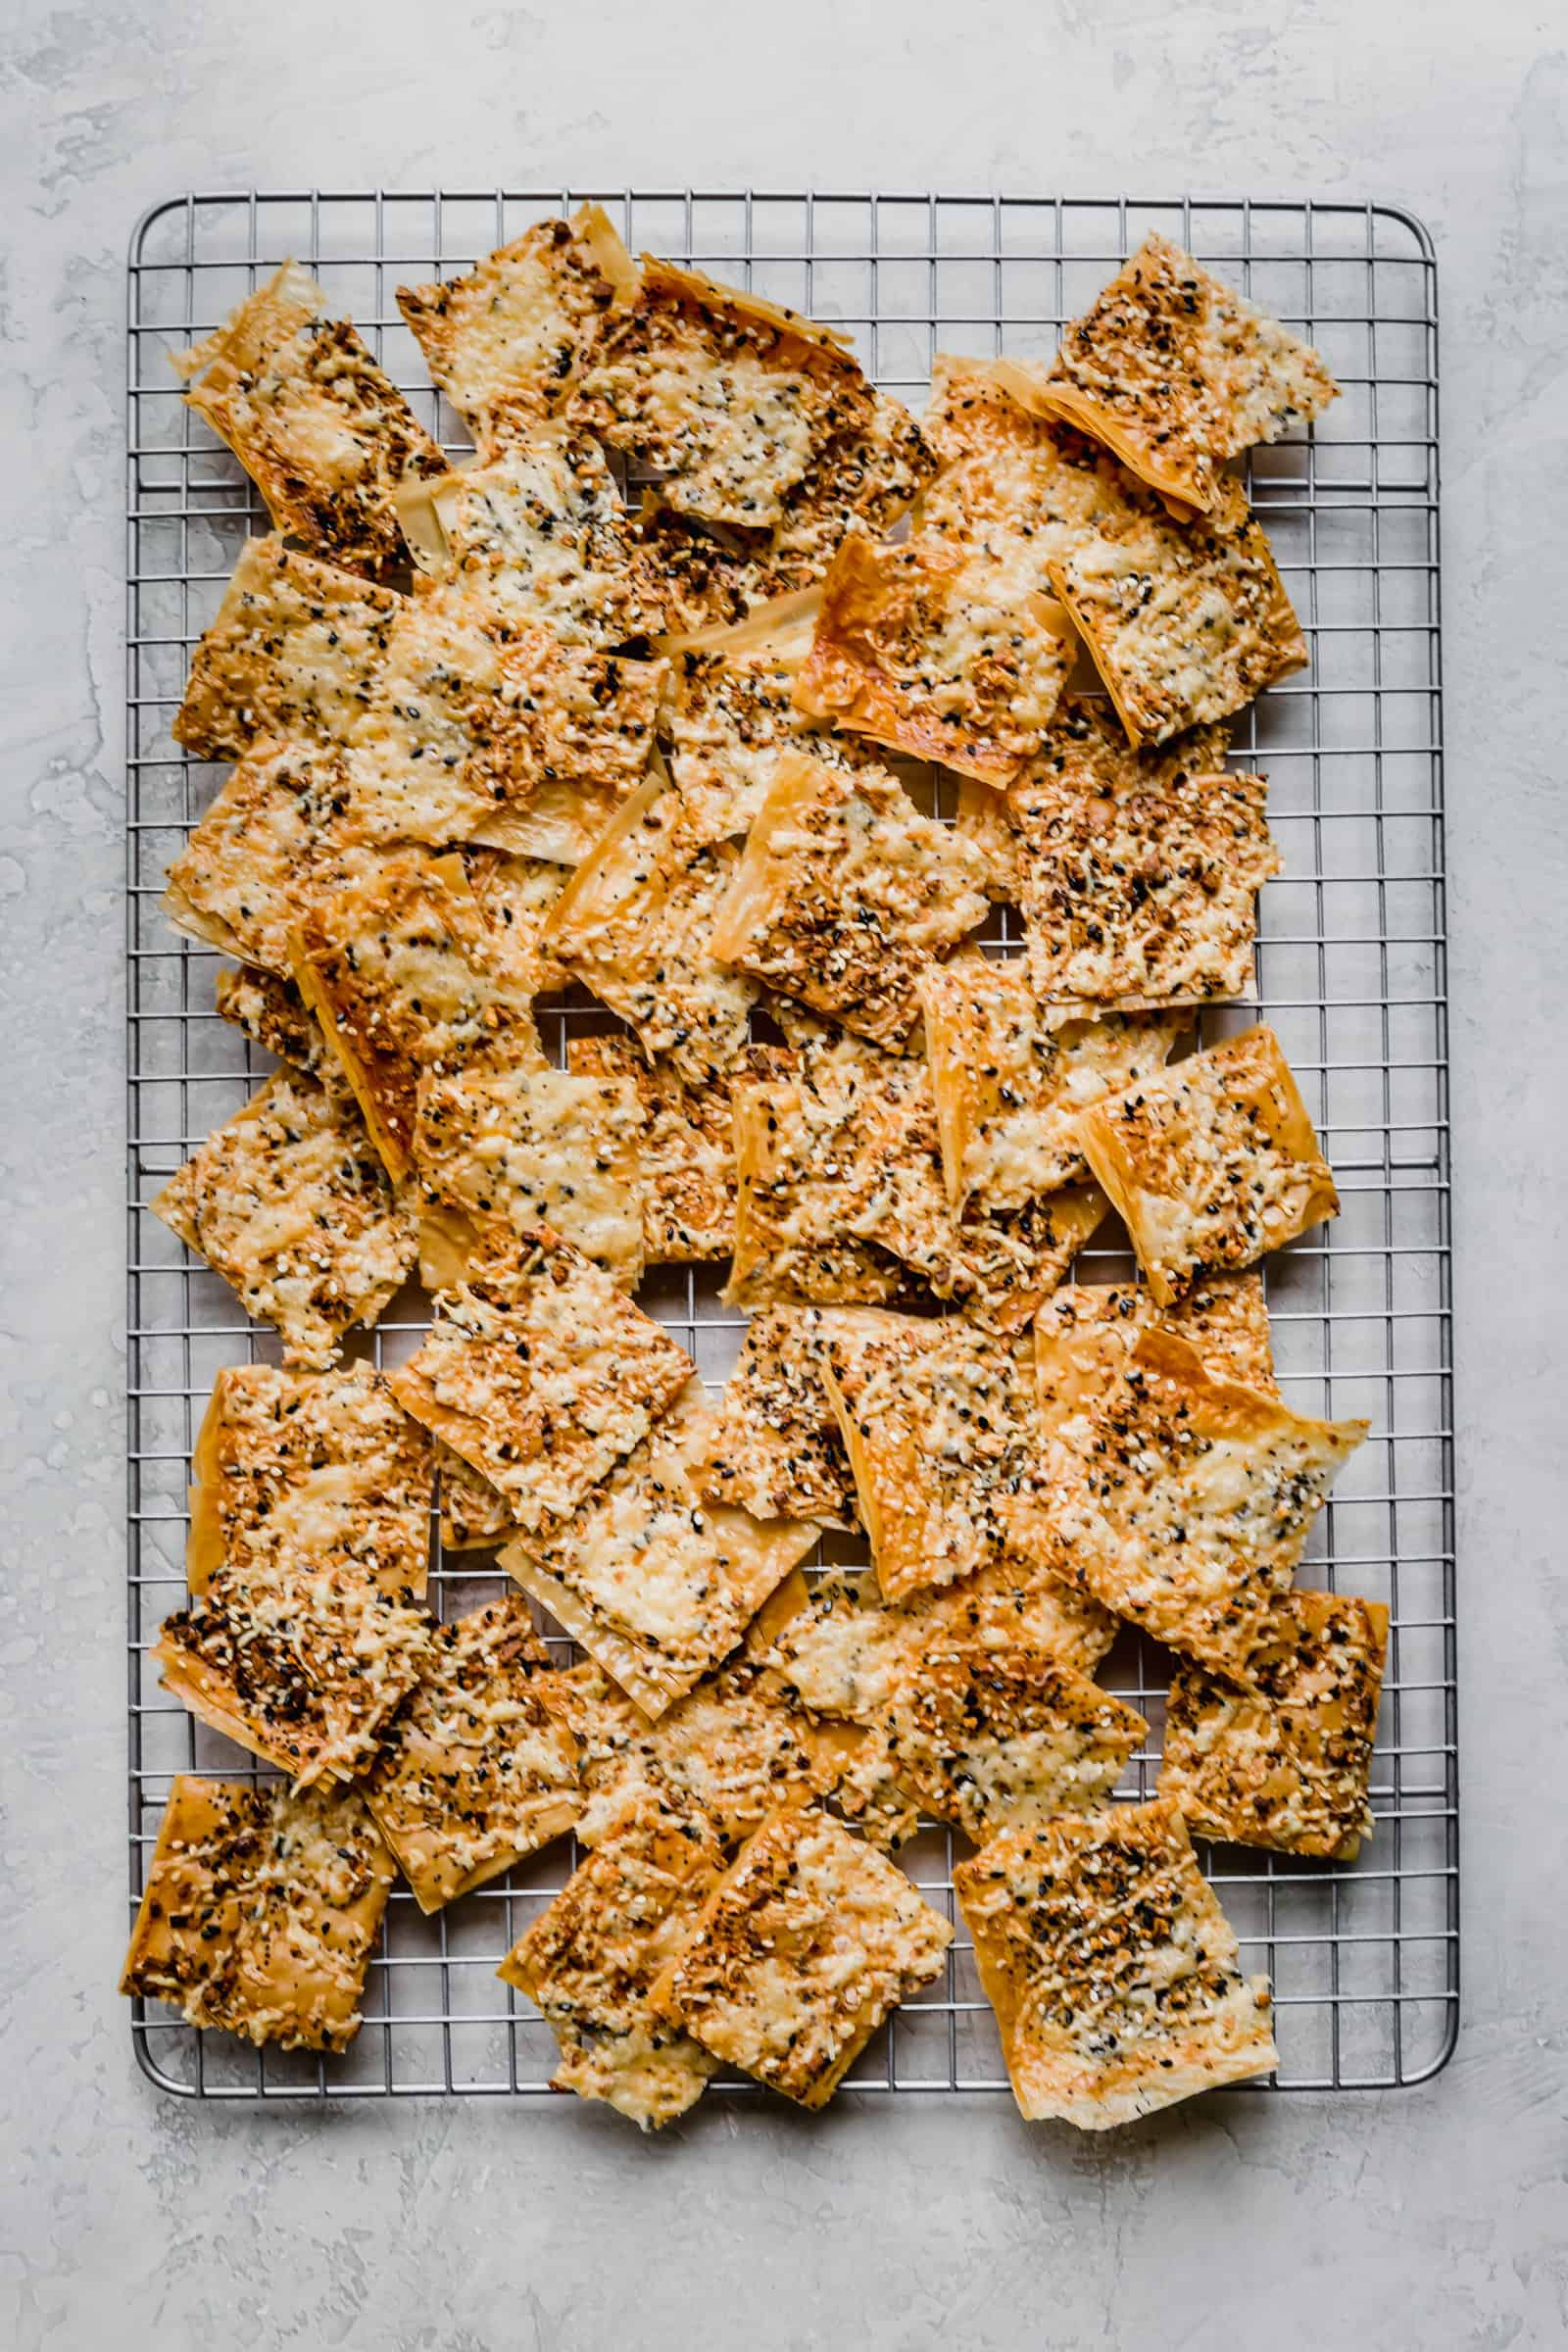 everything phyllo crackers on a wire rack